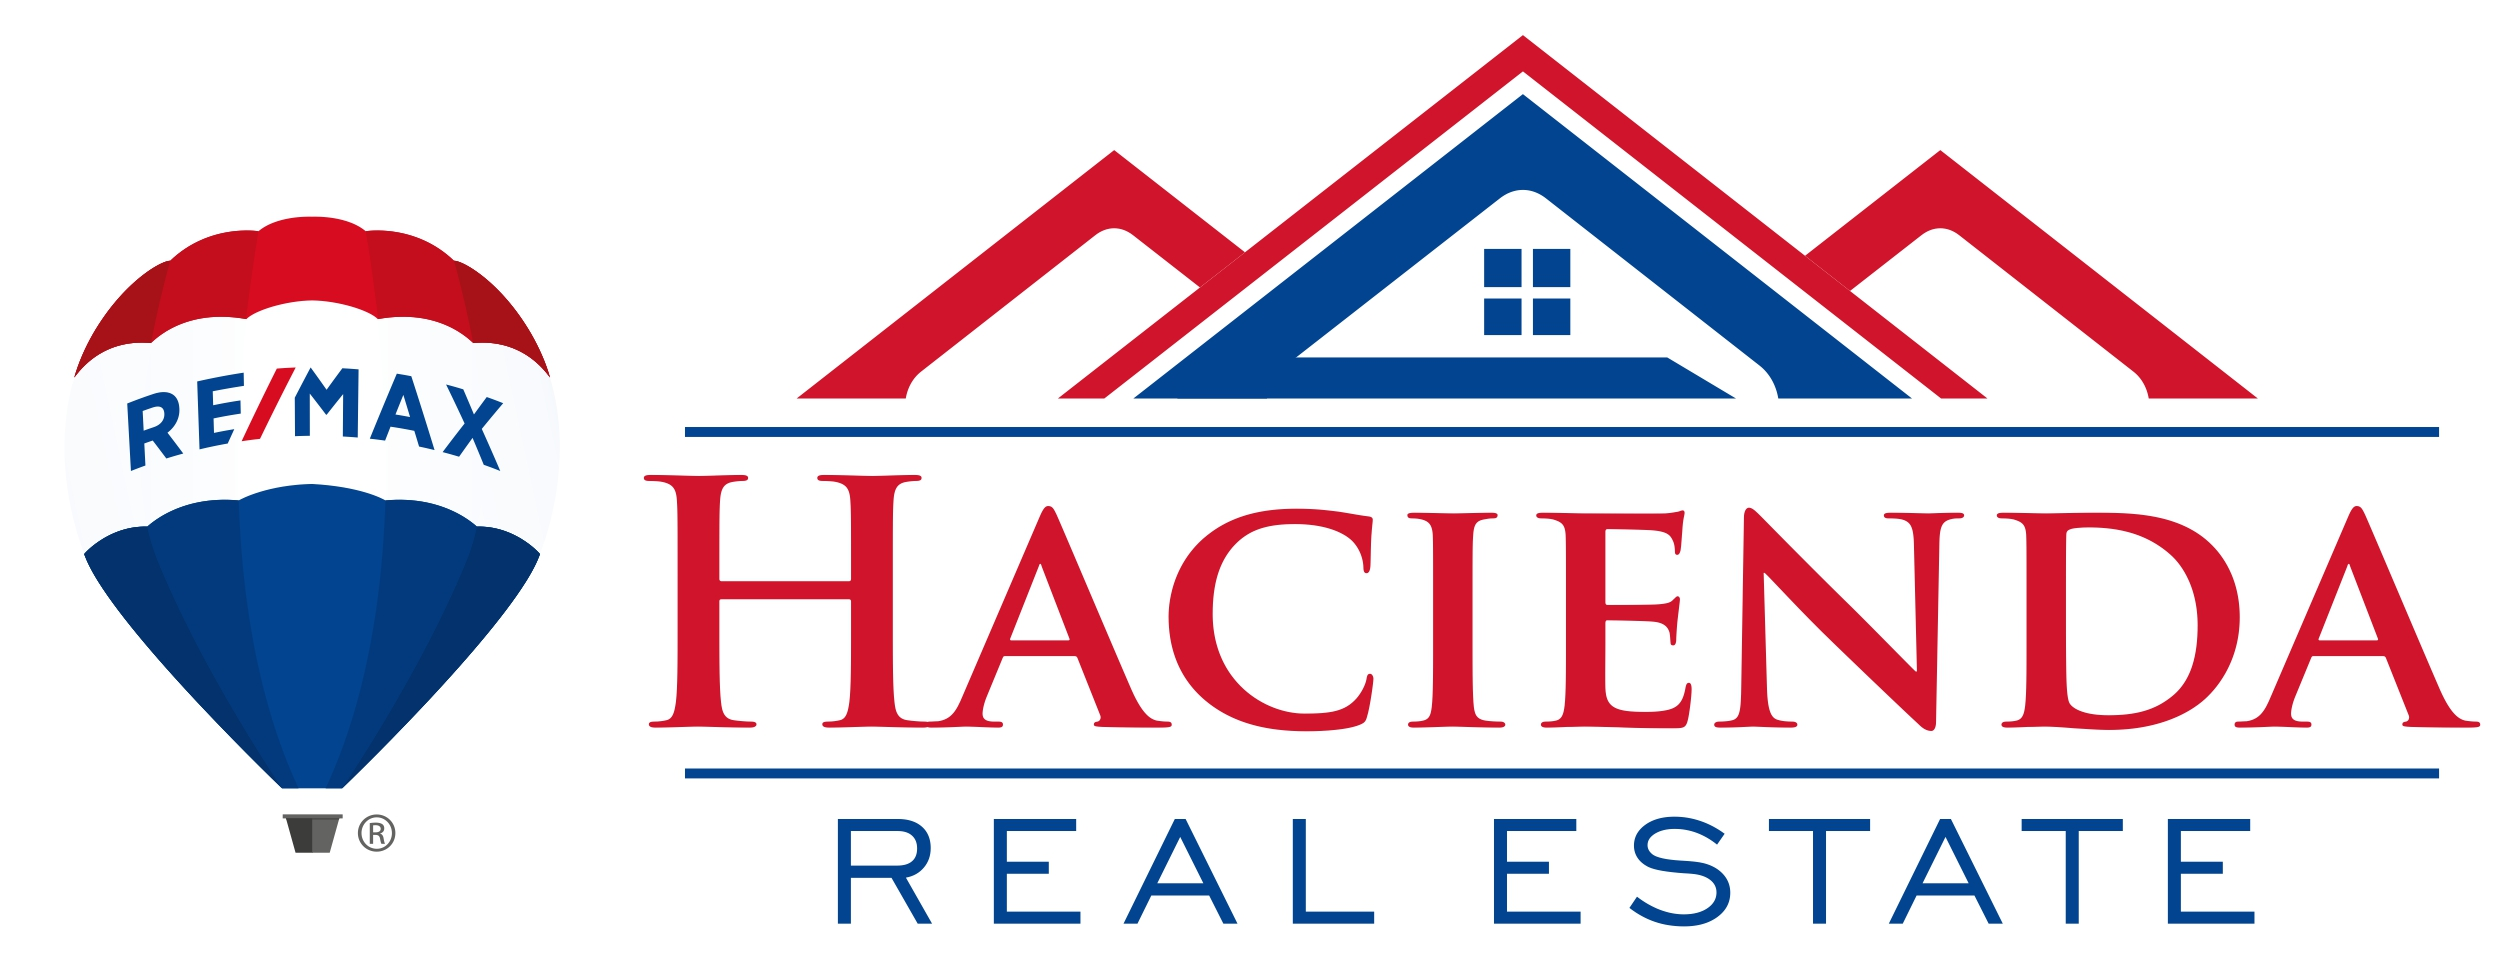 RE/MAX Hacienda